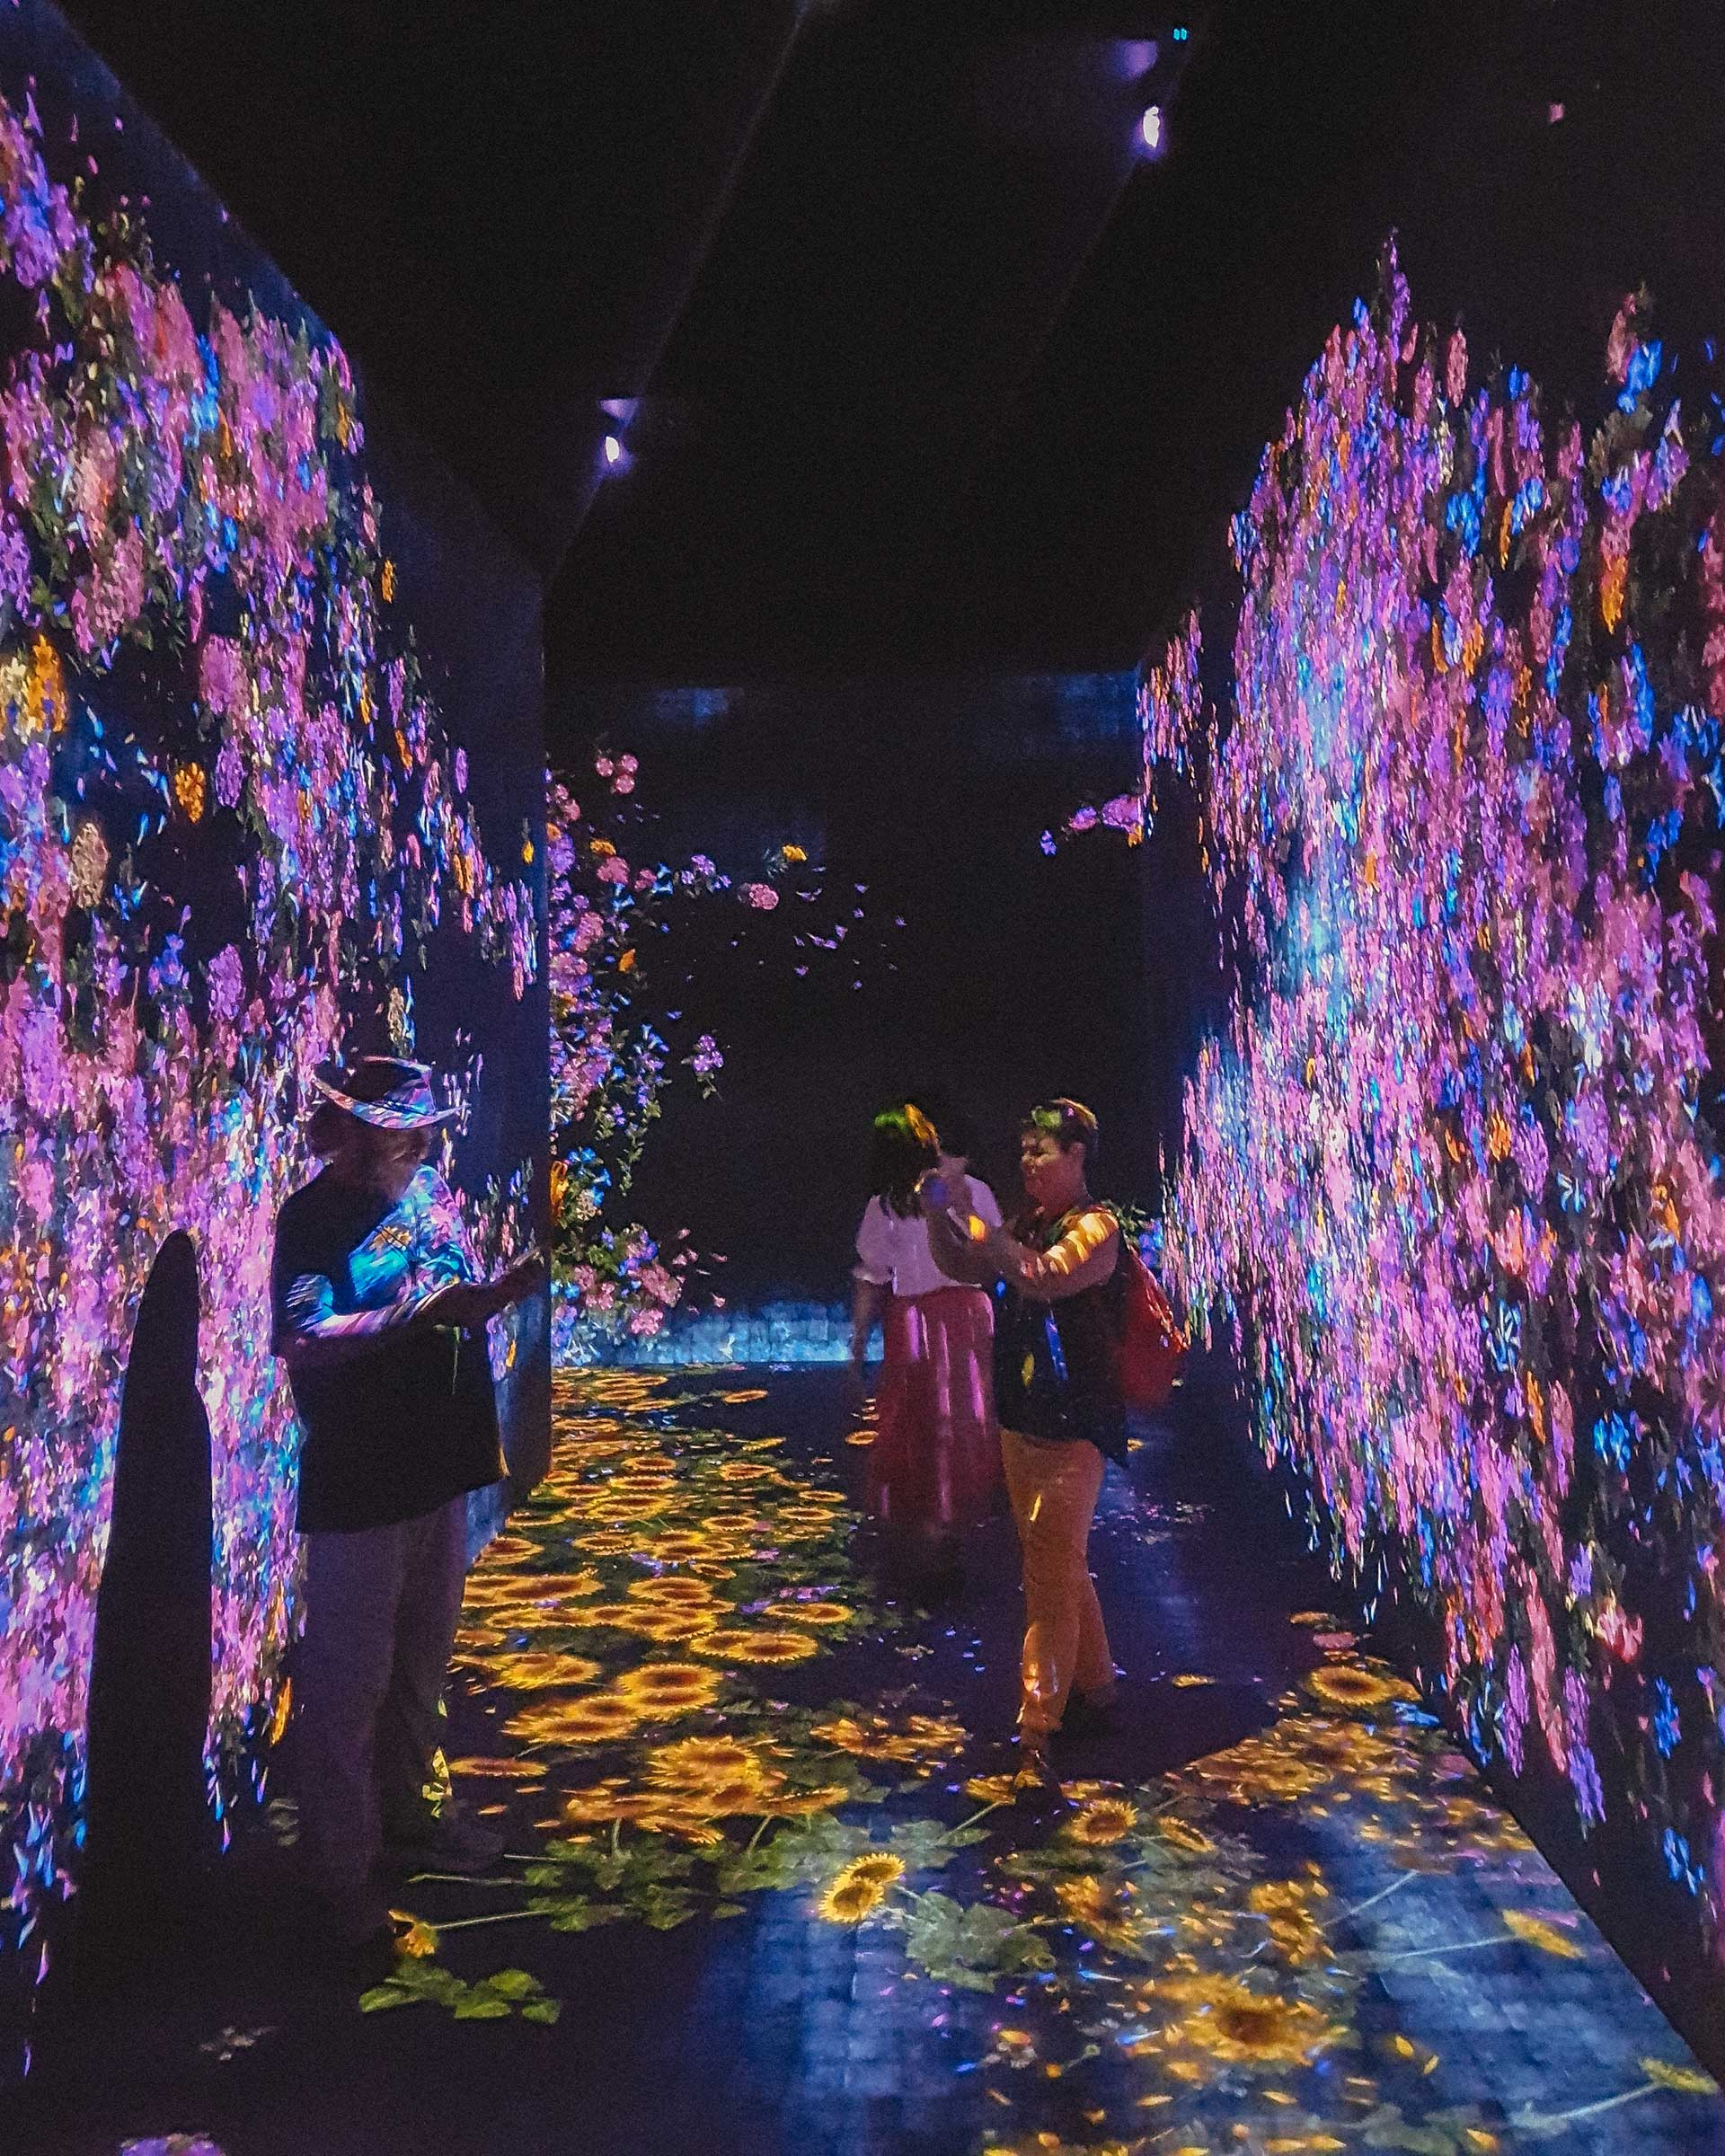 Forest of Flowers and People at teamLab Borderless, Tokyo